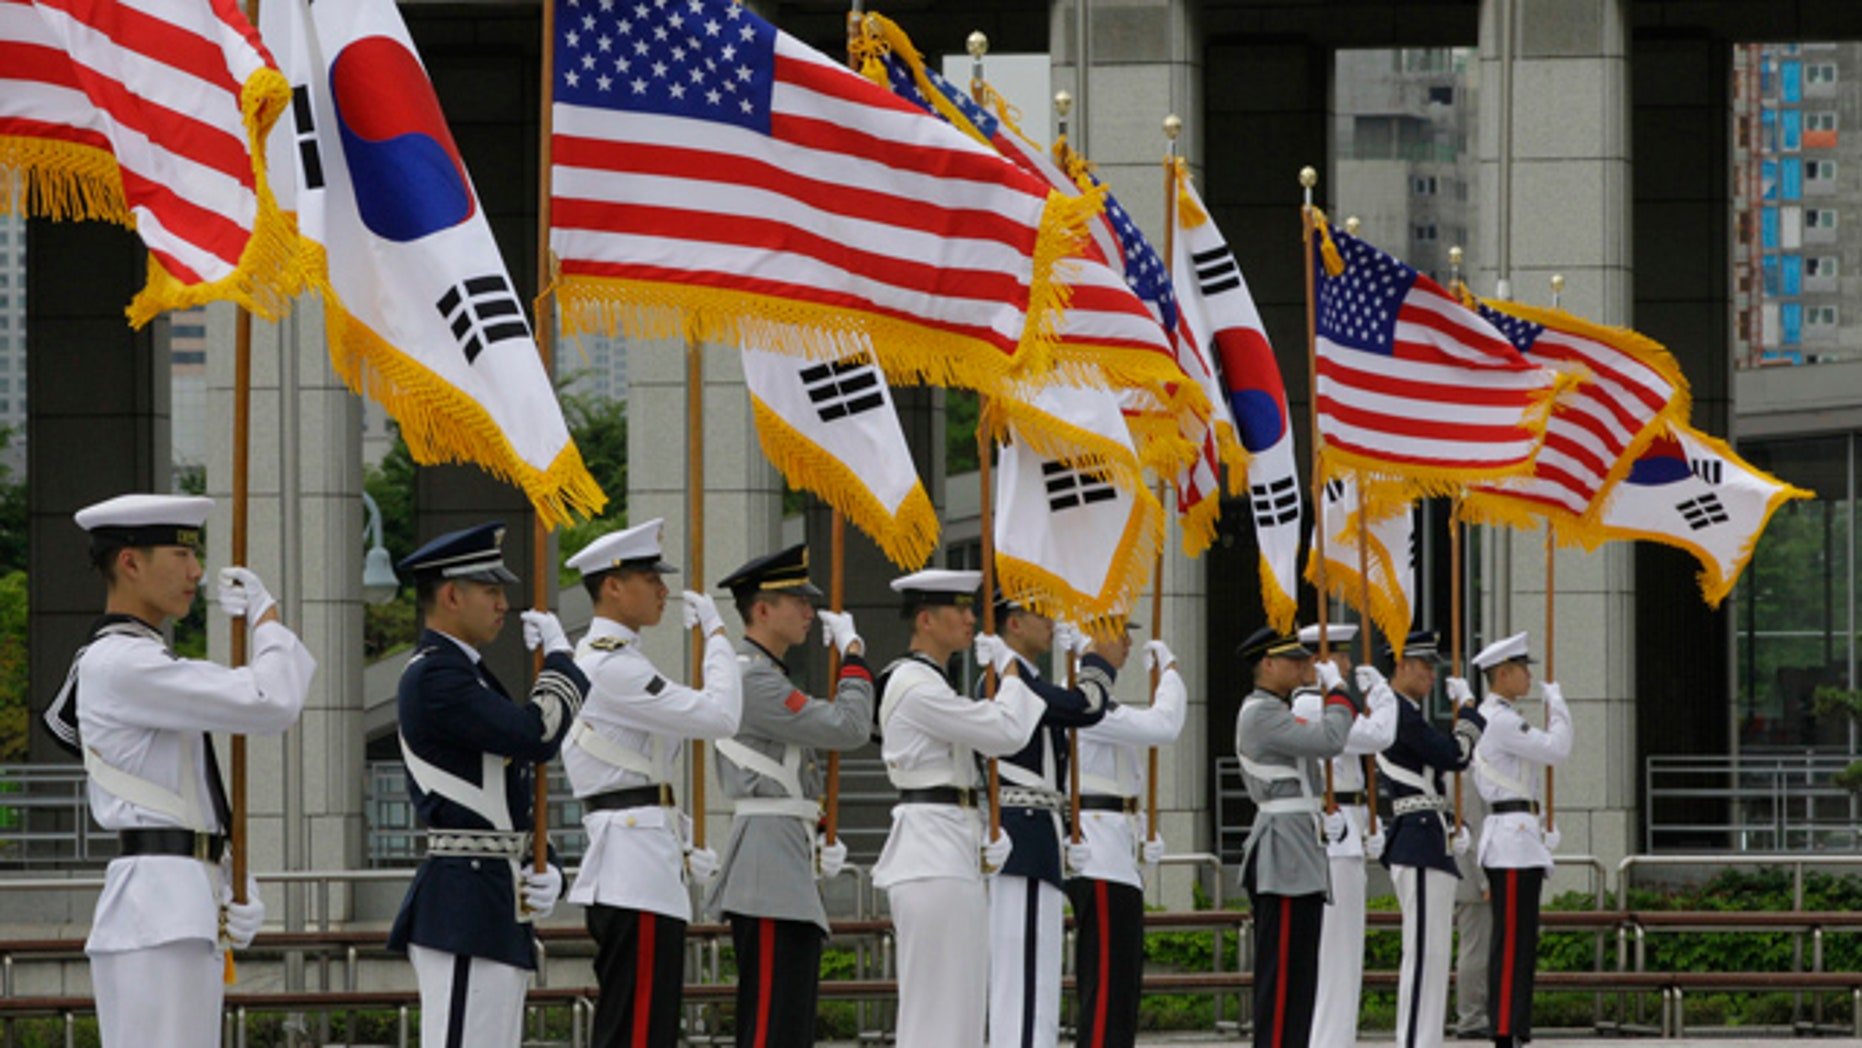 South Korean honor guard soldiers hold American and South Korean national flags during a rehearsal for the welcoming ceremony of U.S. Secretary of State Hillary Rodham Clinton and Defense Secretary Robert Gates in Seoul, South Korea, Tuesday, July 20, 2010. Gates, who arrived on Monday, will be joined by Clinton on Wednesday for high-profile security talks with their South Korean colleagues, a meeting meant to underscore Washington's firm alliance with Seoul as the two nations plan military exercises in a message of deterrence to North Korea. (AP Photo/ Lee Jin-man)